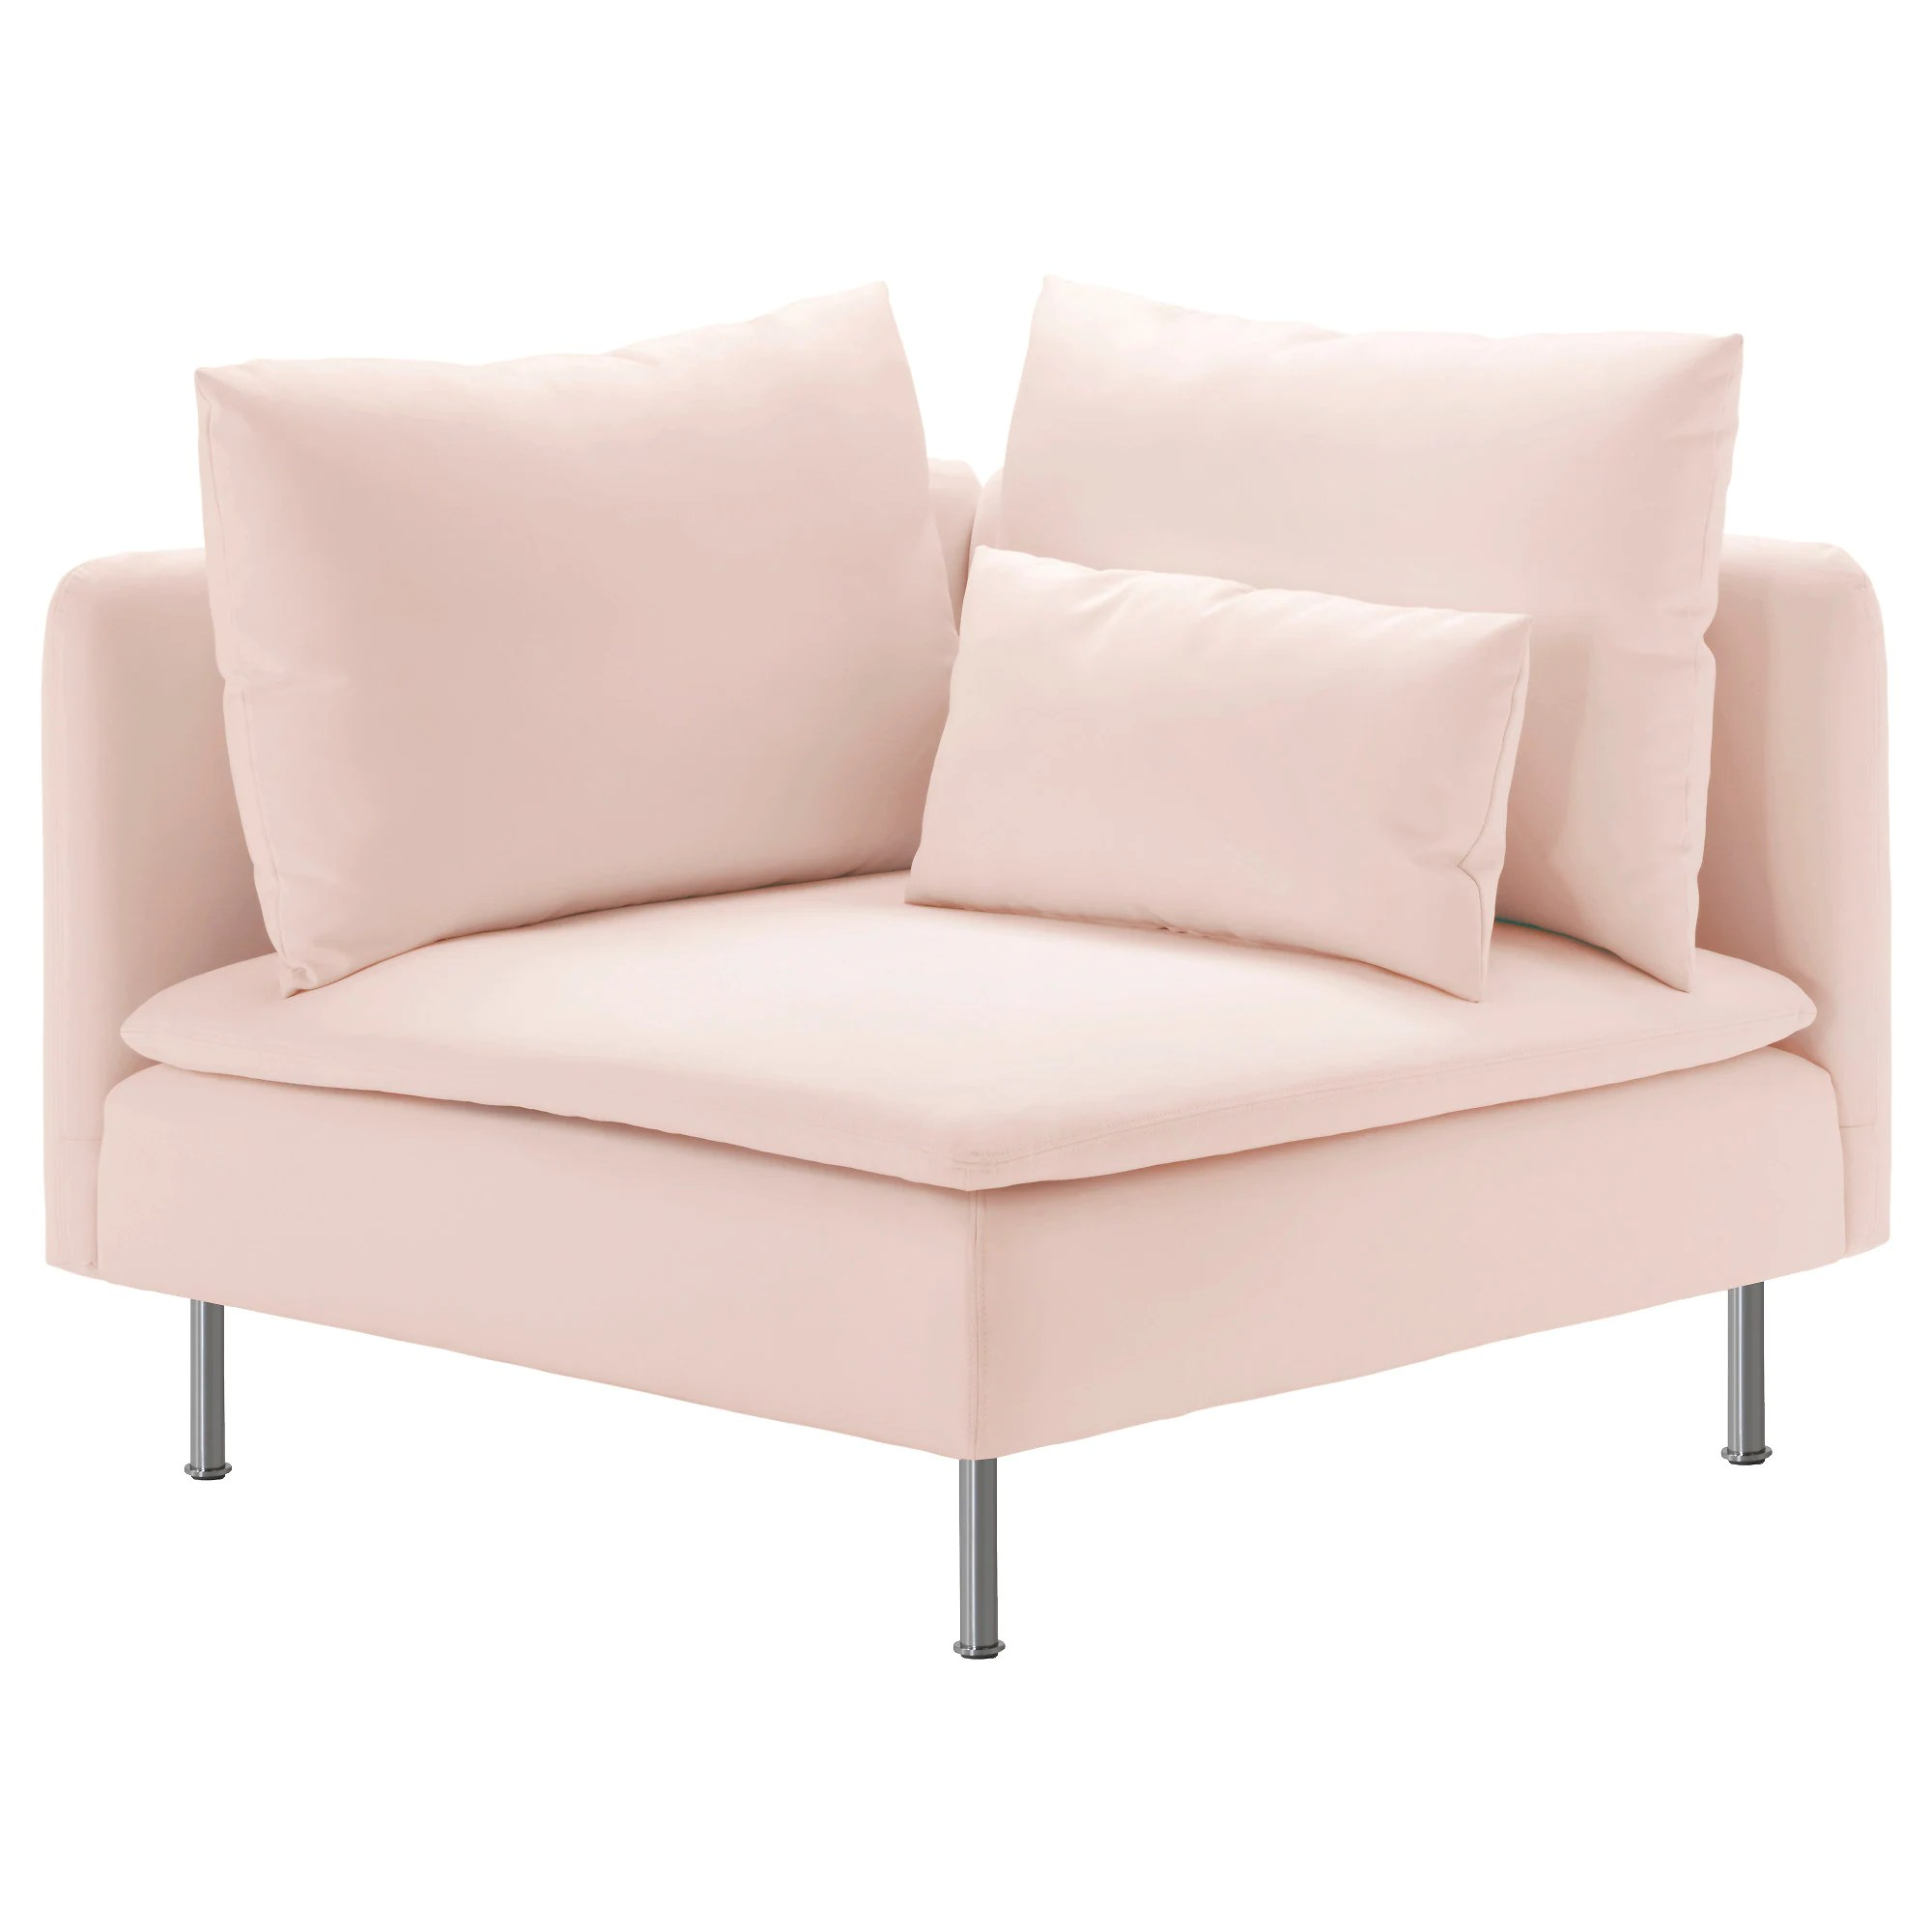 light pink sofa bed karlstad 3 seater inspirational couch or darling